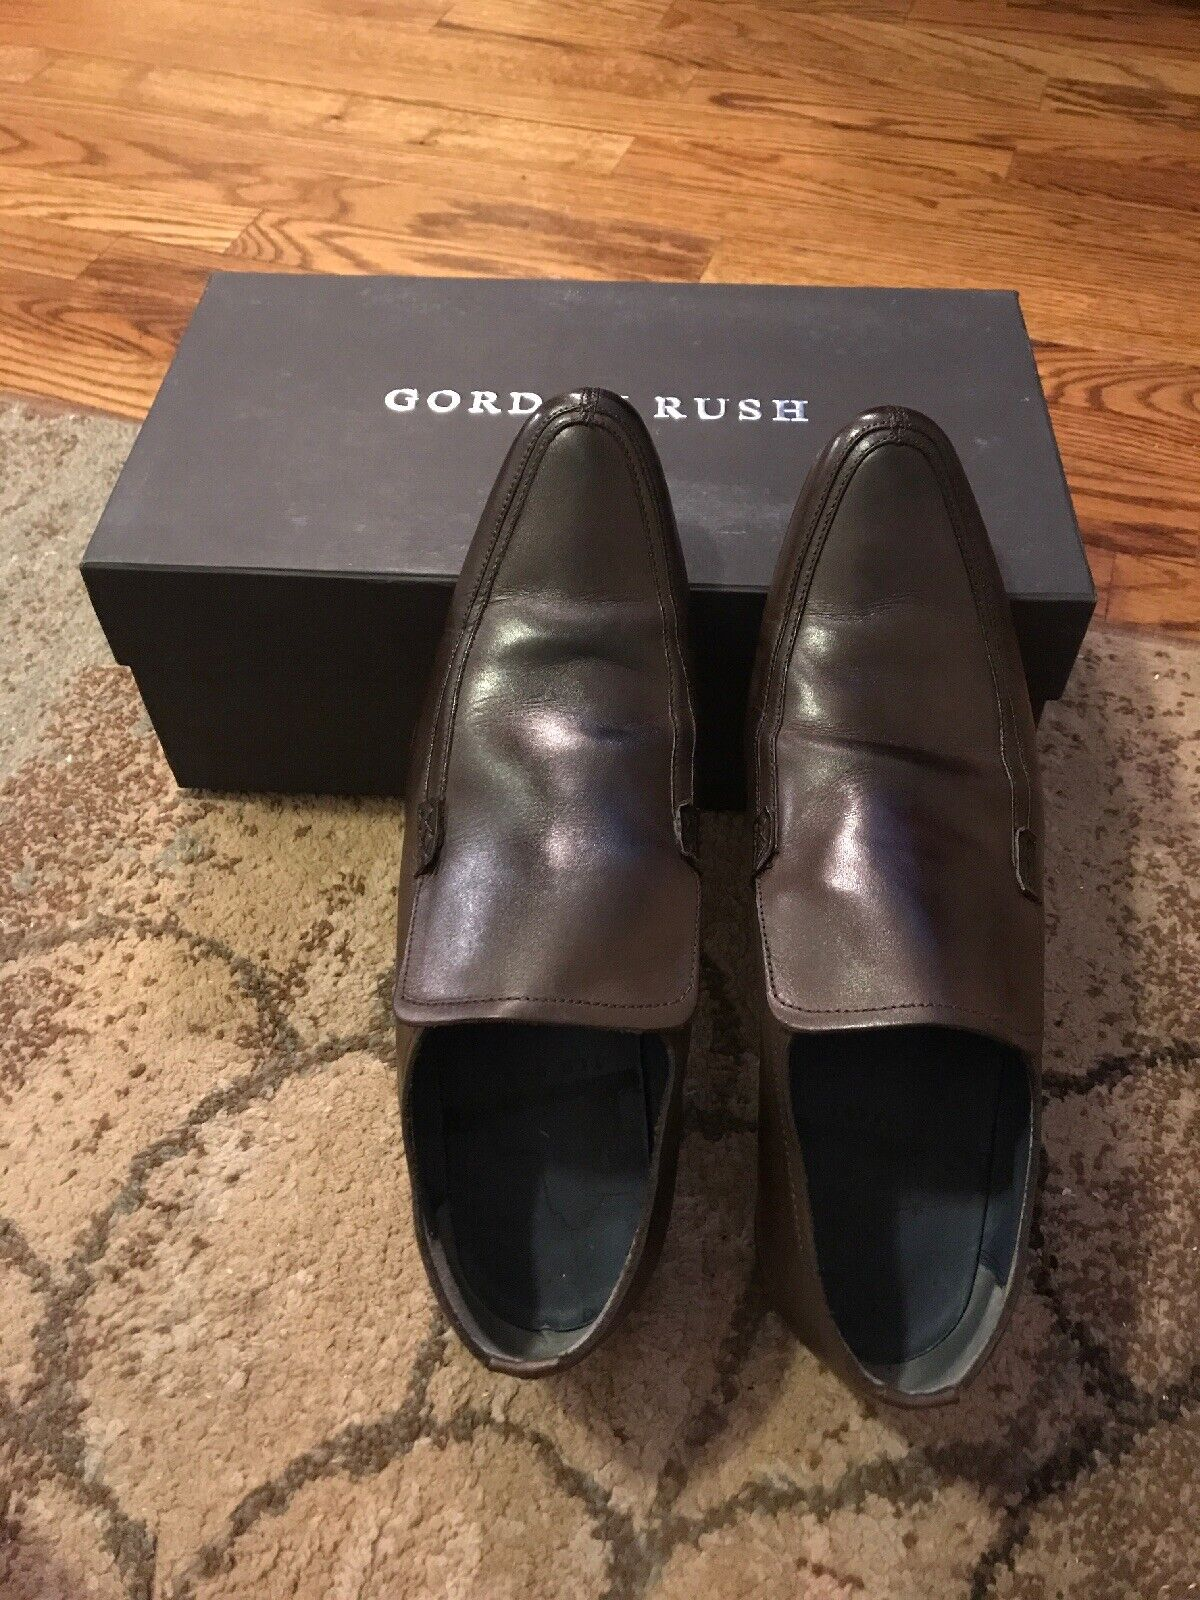 Gordon Rush Men's Loafers. Brown. Size 10. Used. Clean. Great Shape.